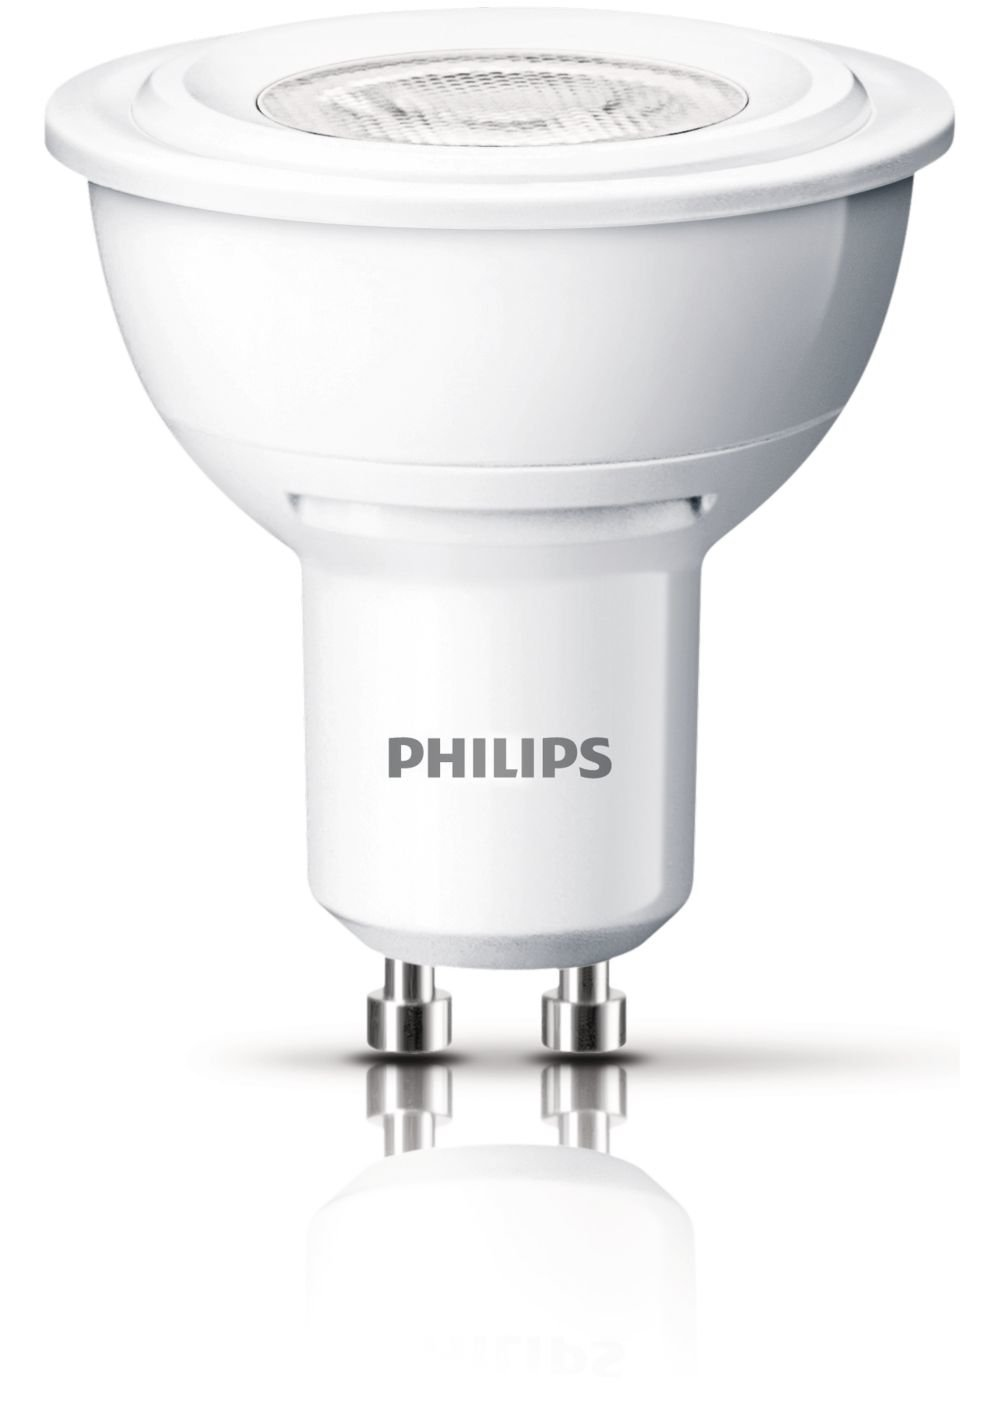 <p>Bombilla de LED con un consumo de 4,5W. Philips &nbsp;color blanco c&aacute;lido</p>